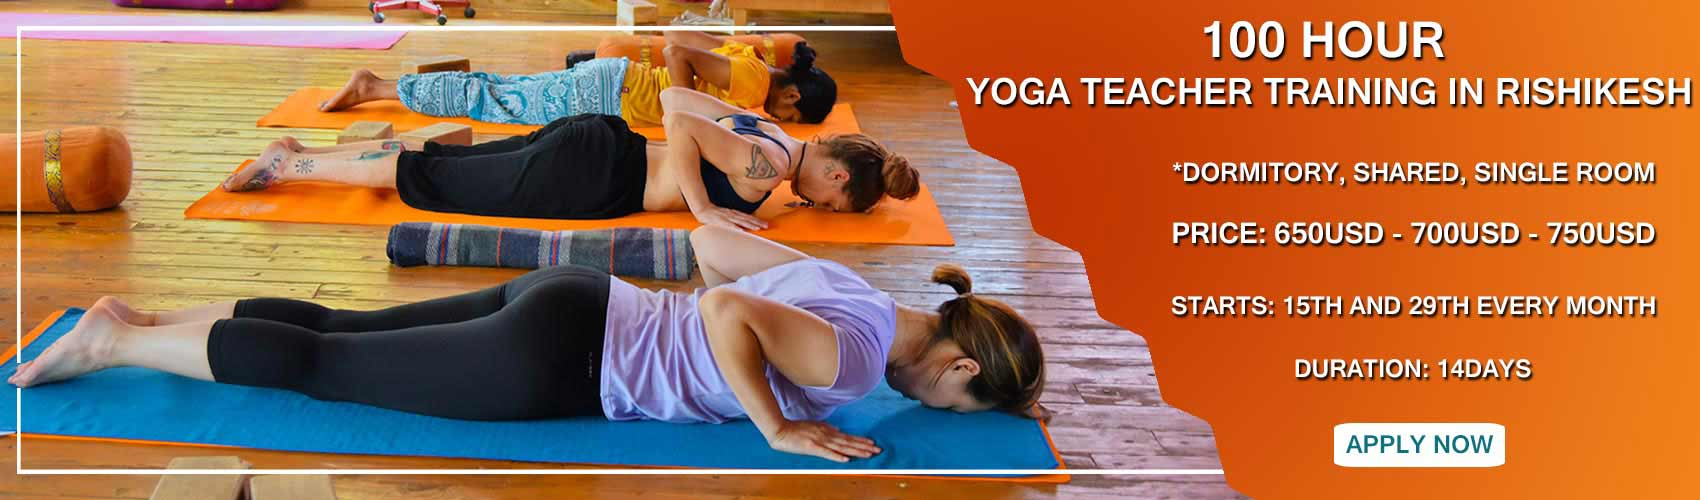 AYM Yoga School | 200-Hour Yoga Teacher Training in Rishikesh